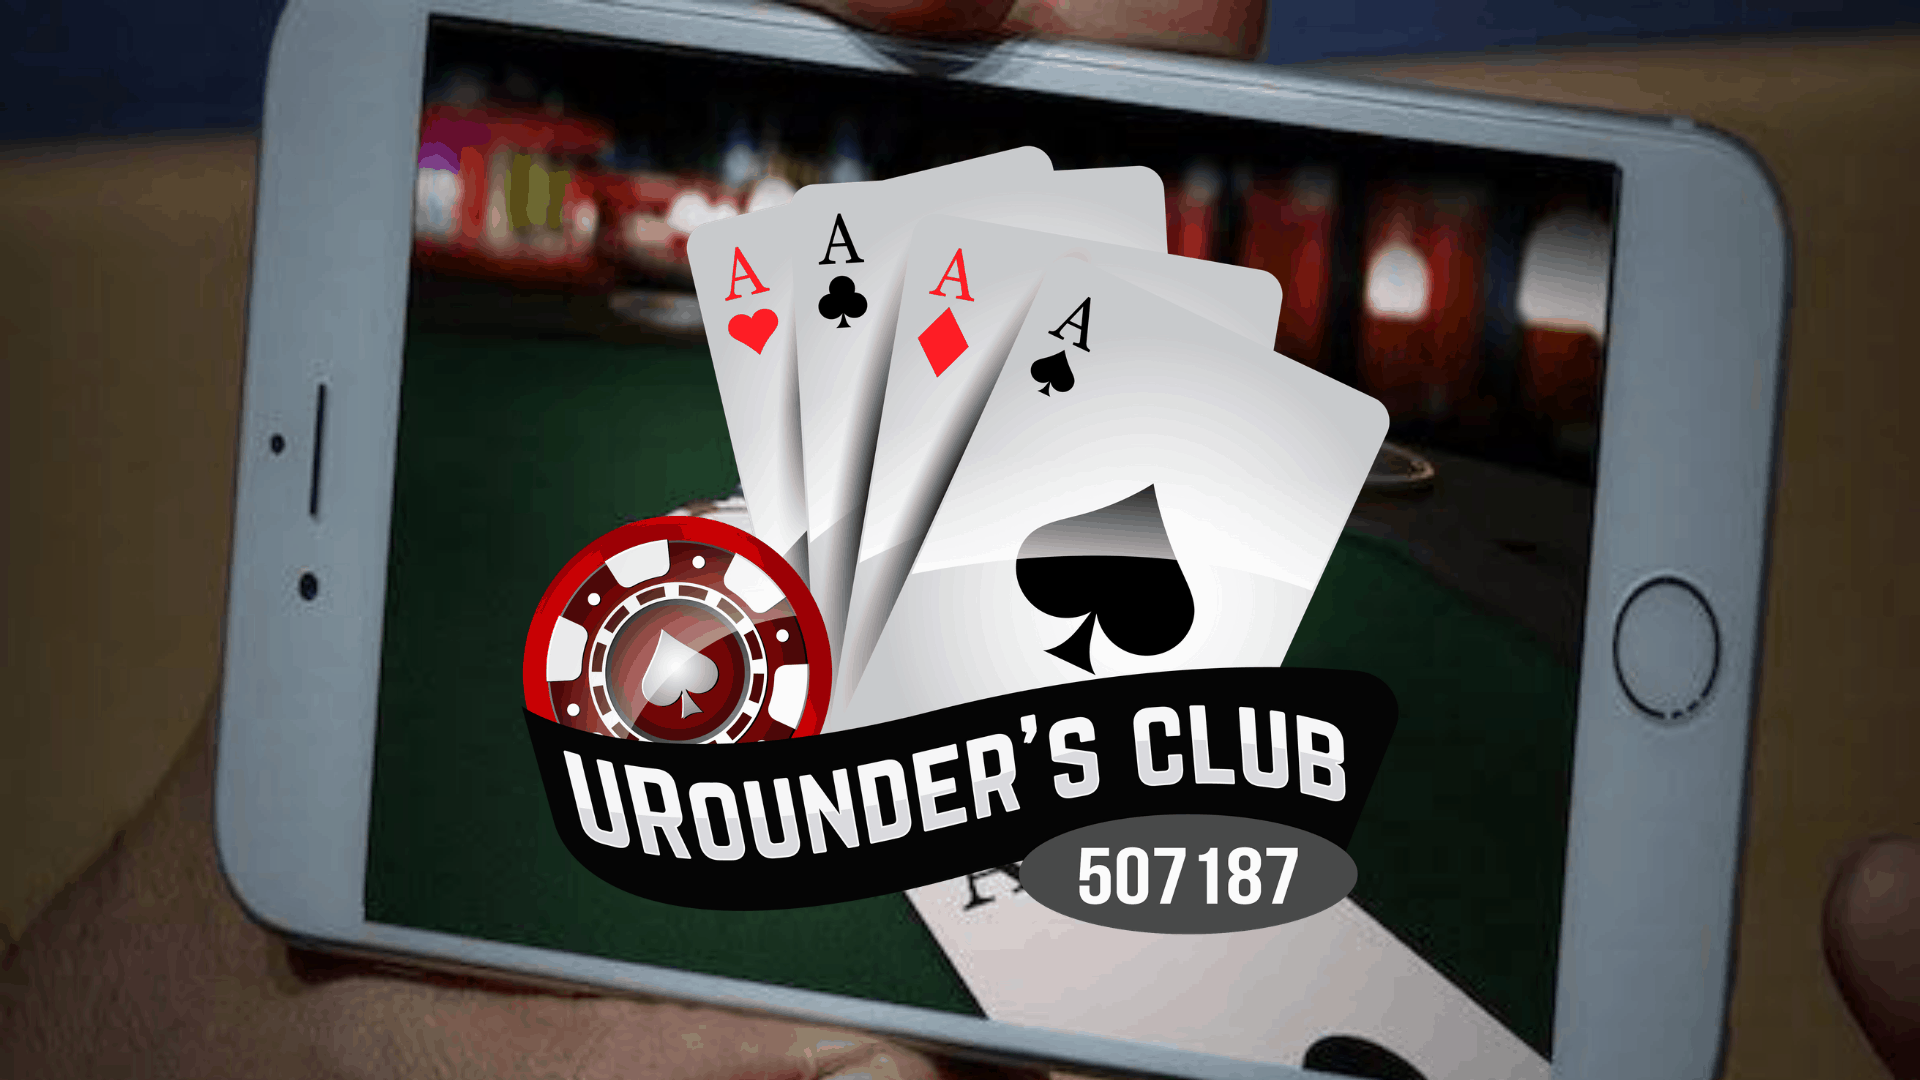 Play Poker with URounder Club Anytime, Anywhere from Your Mobile Phone